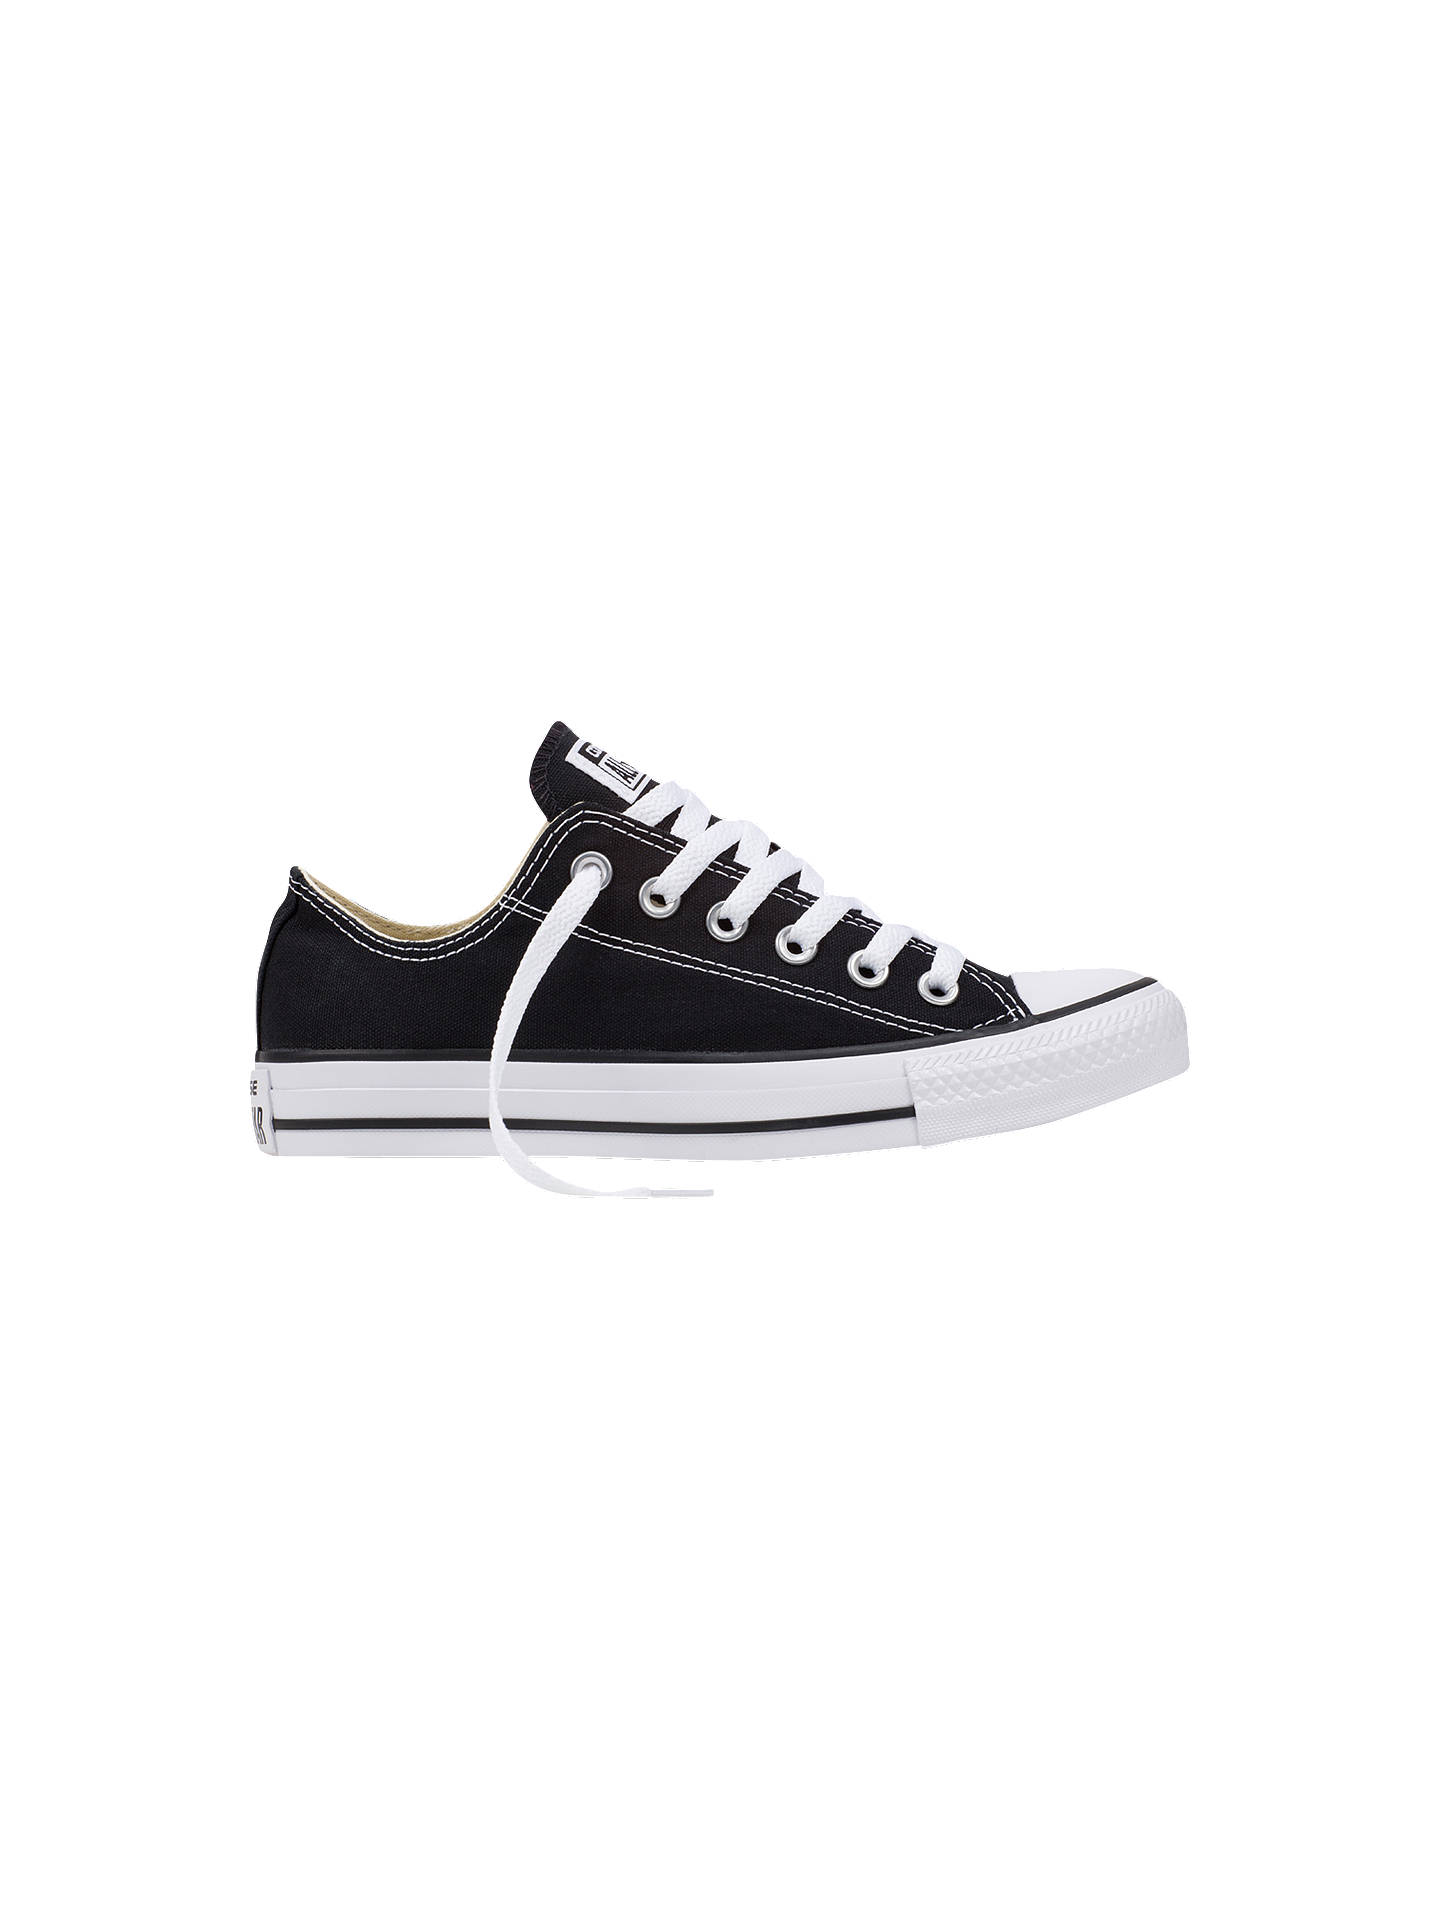 best sneakers f17ce ca8c4 Buy Converse Chuck Taylor All Star Ox Trainers, Black, 9 Online at  johnlewis.